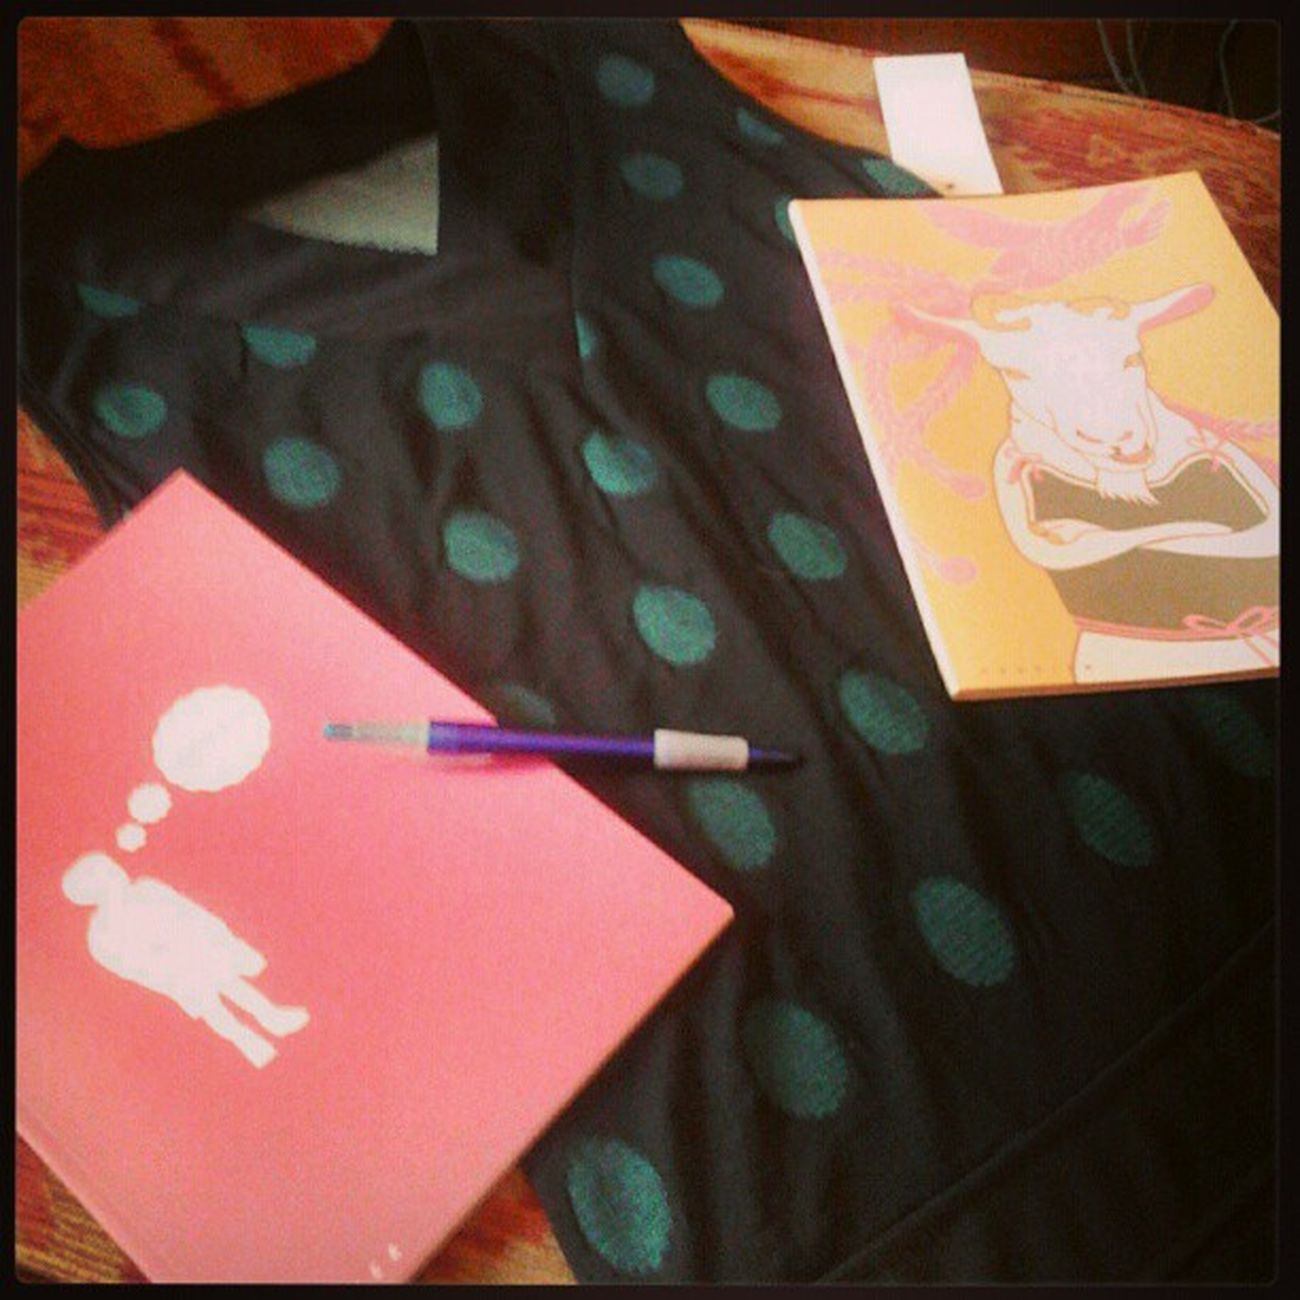 Shopping da Hipster al mercato! yay! Vitadahipster Dress quaderni pink pois green